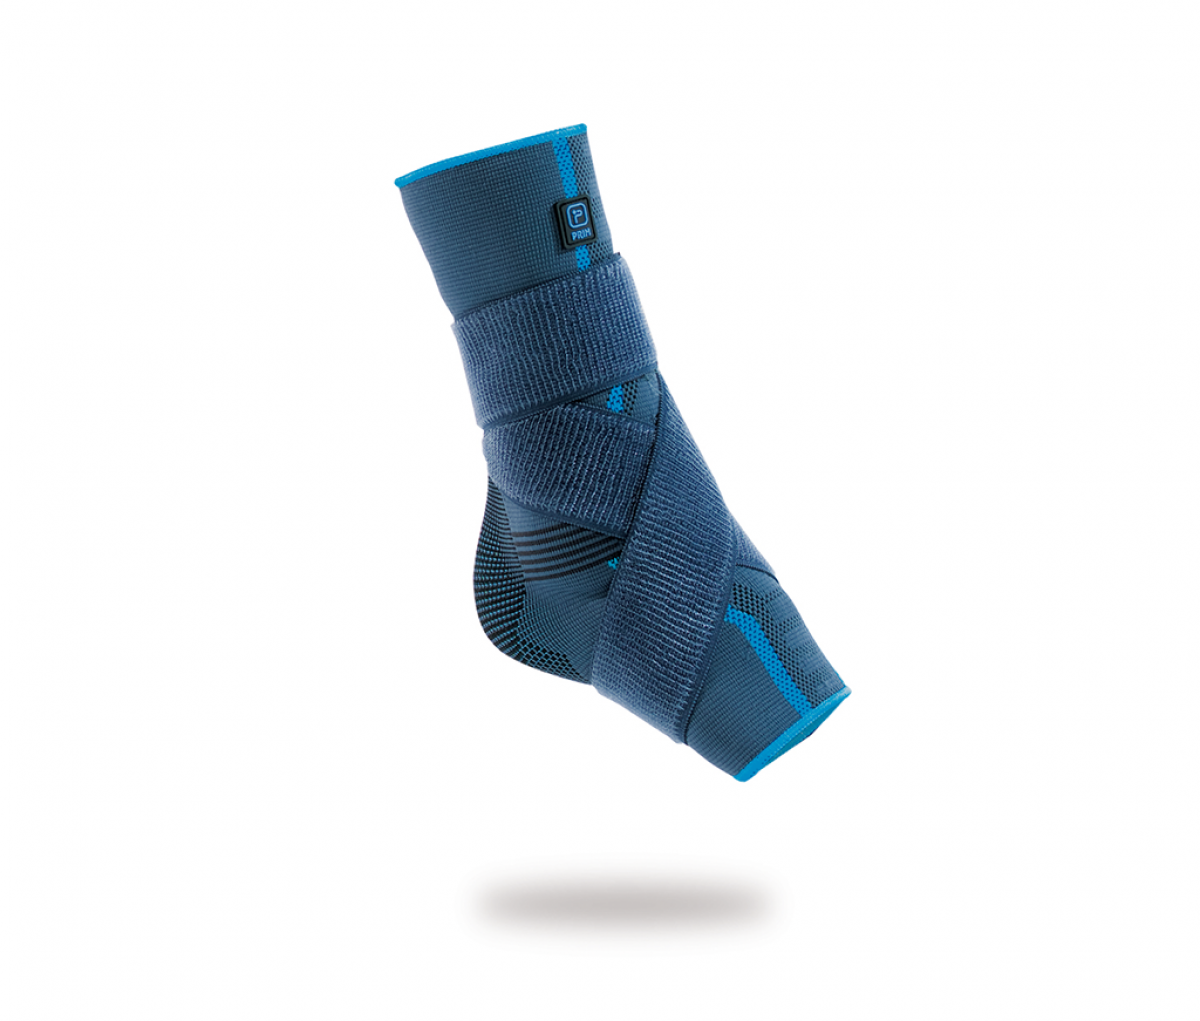 AQTIVO ANKLE BRACE WITH FIGURE OF 8 STRAP - S P706